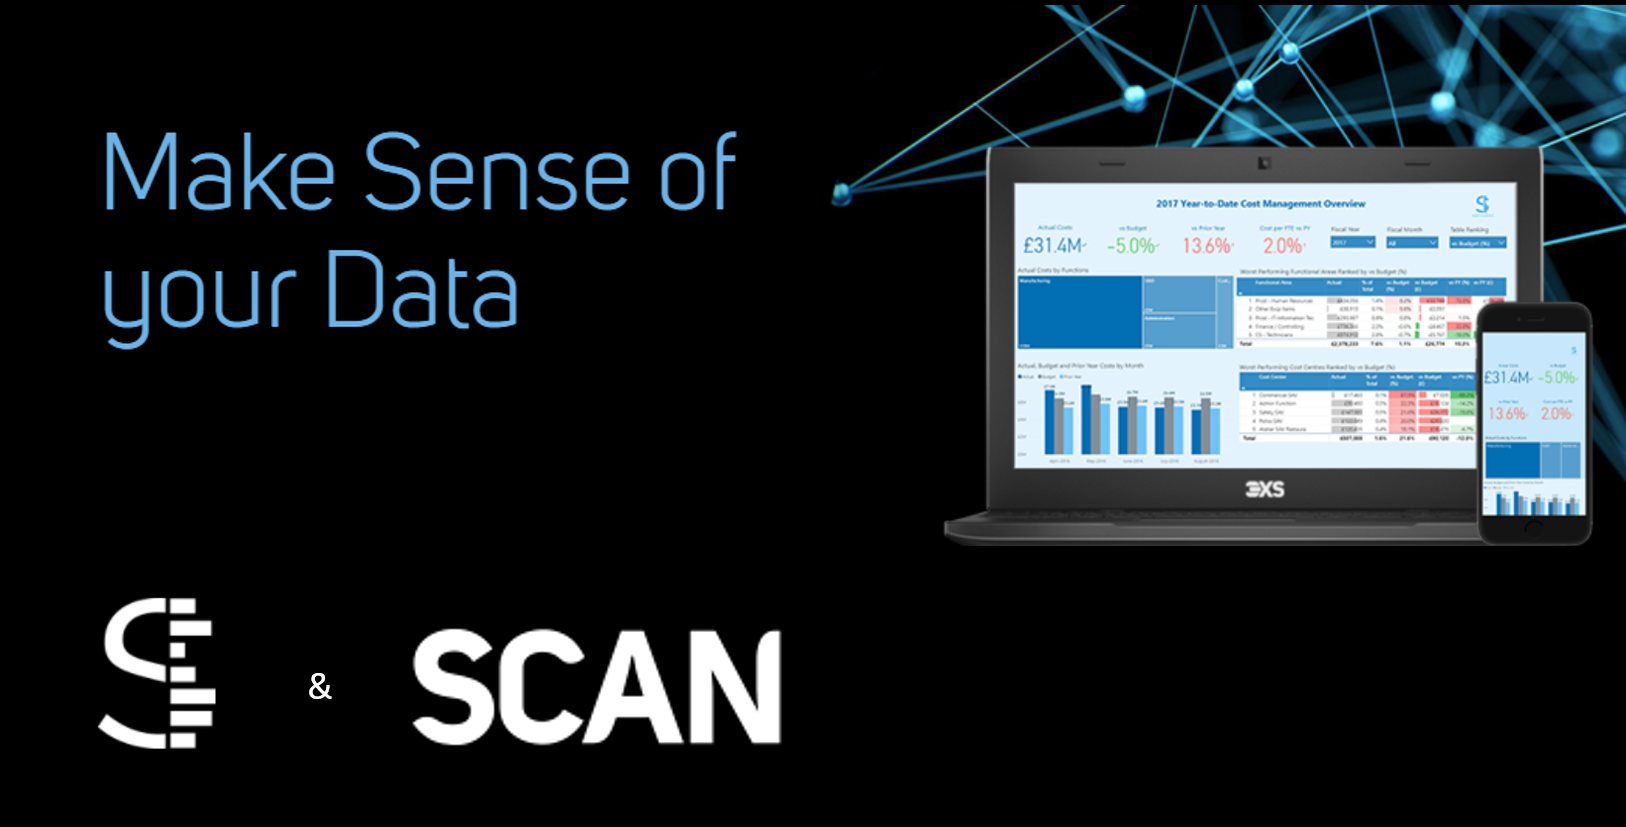 Analytics partnership with Scan Computers